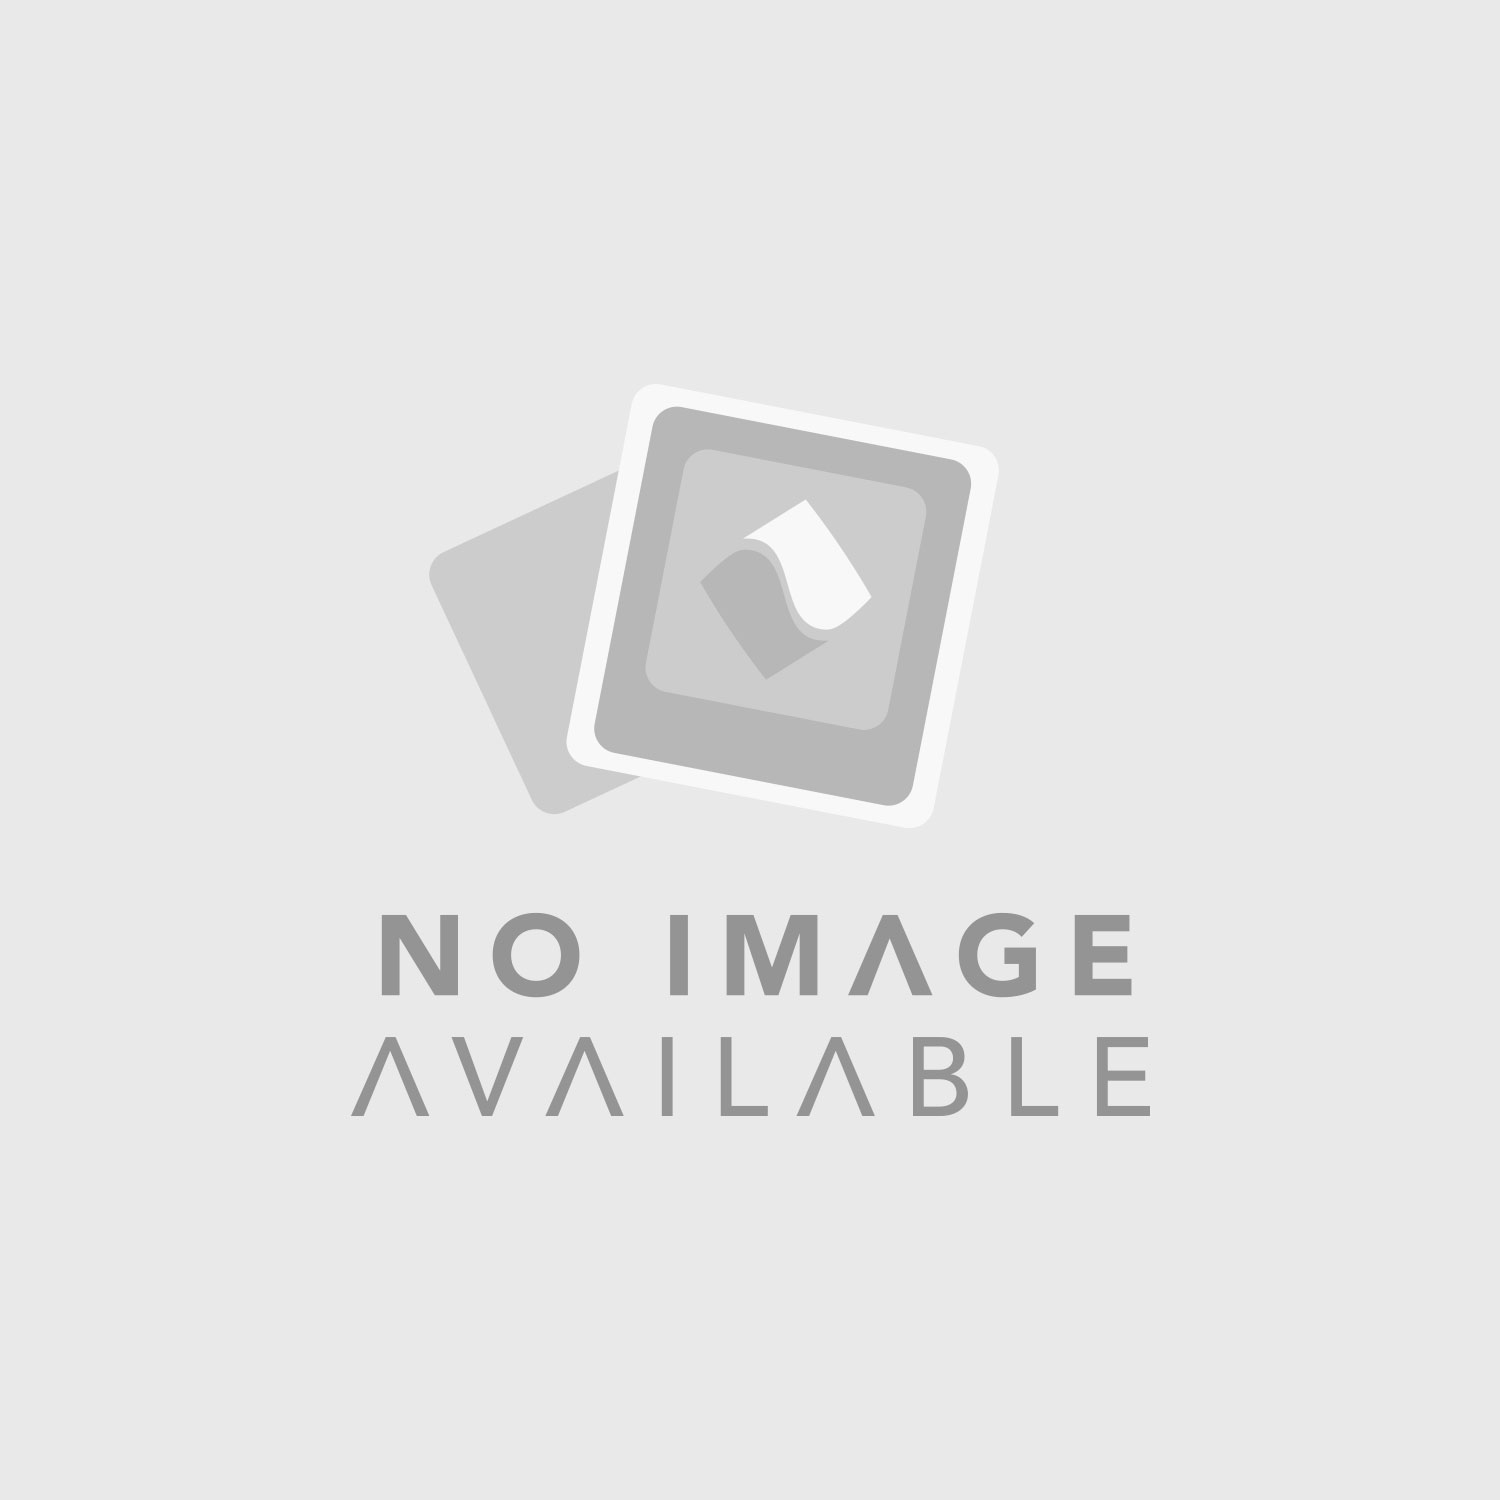 Neutrik XXR-7 Color Coding Ring (Violet)